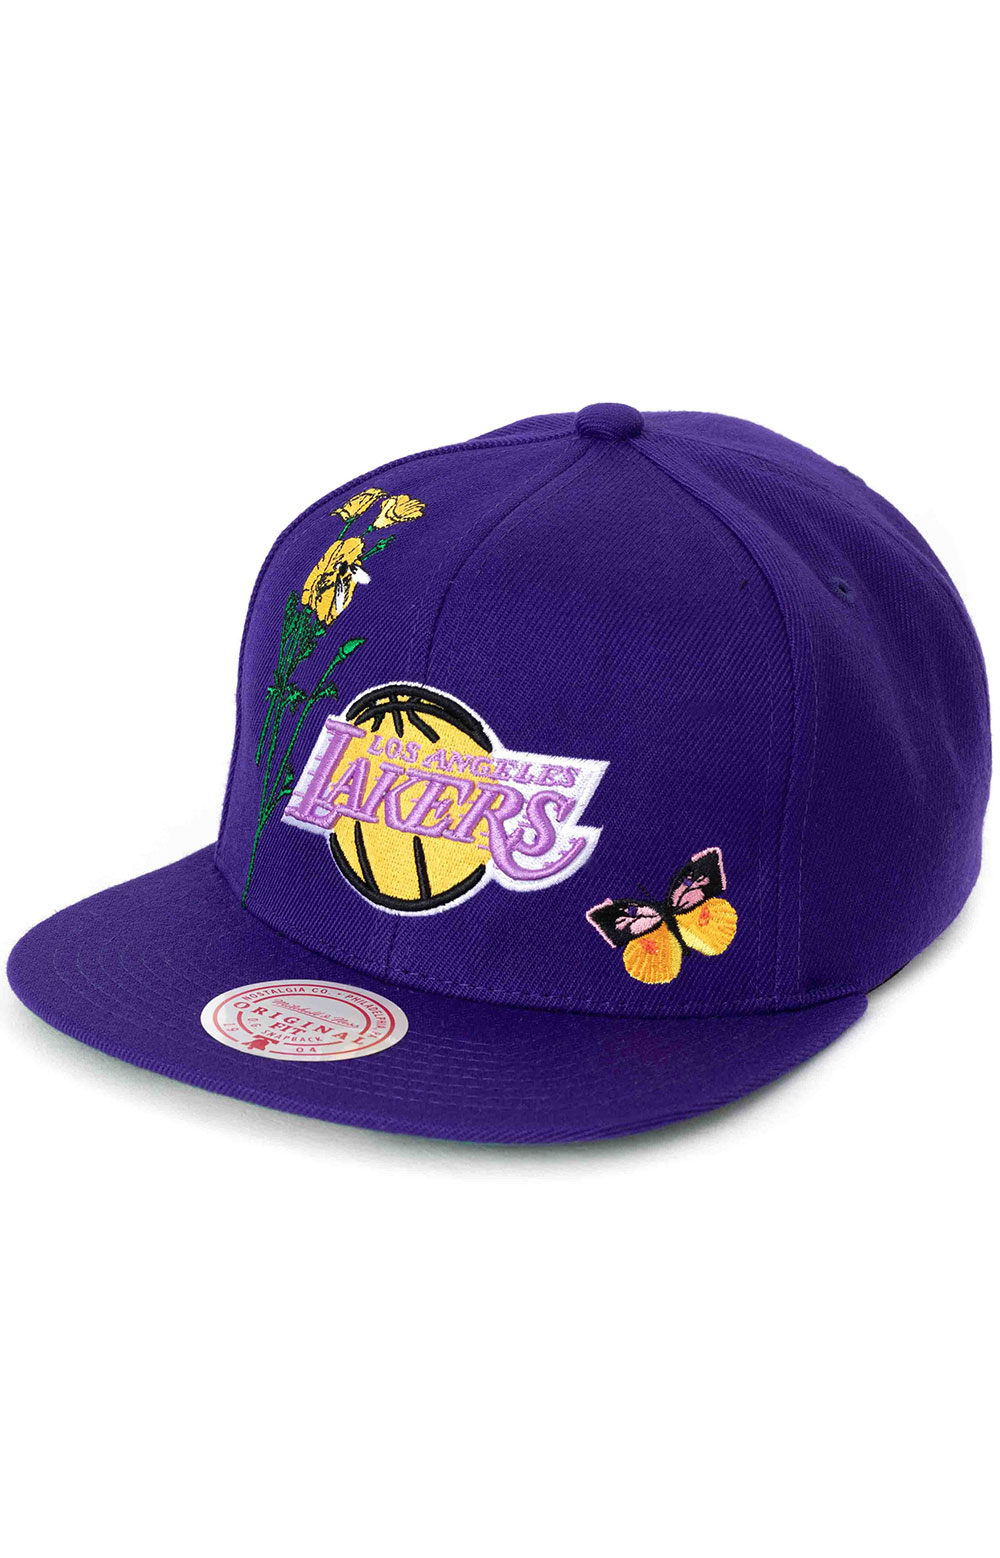 State Flower Snap-Back Hat - Lakers